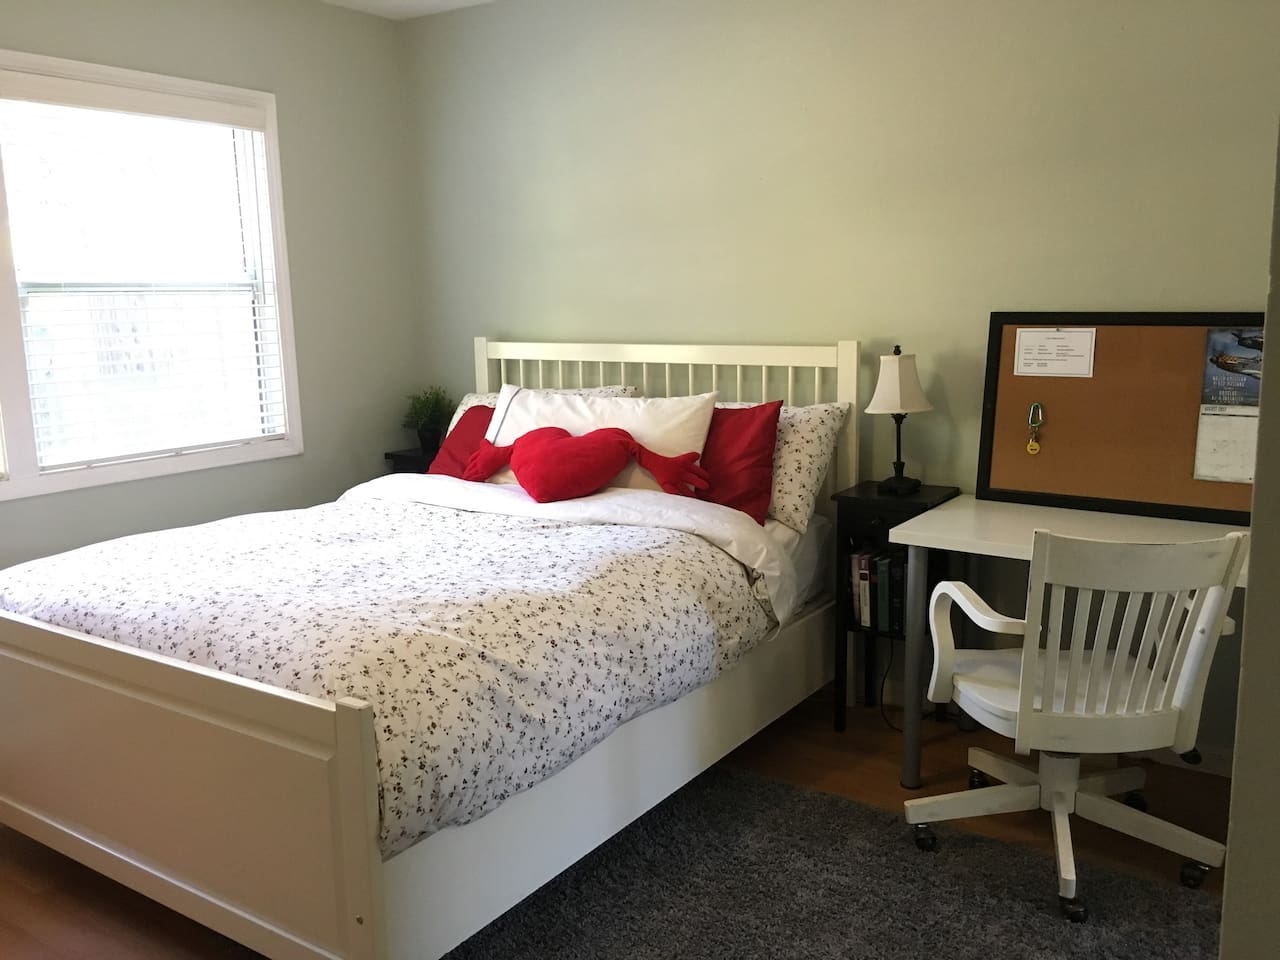 Private Room with a comfy Queen Bed, TV with Plenty of premium channels and networks.